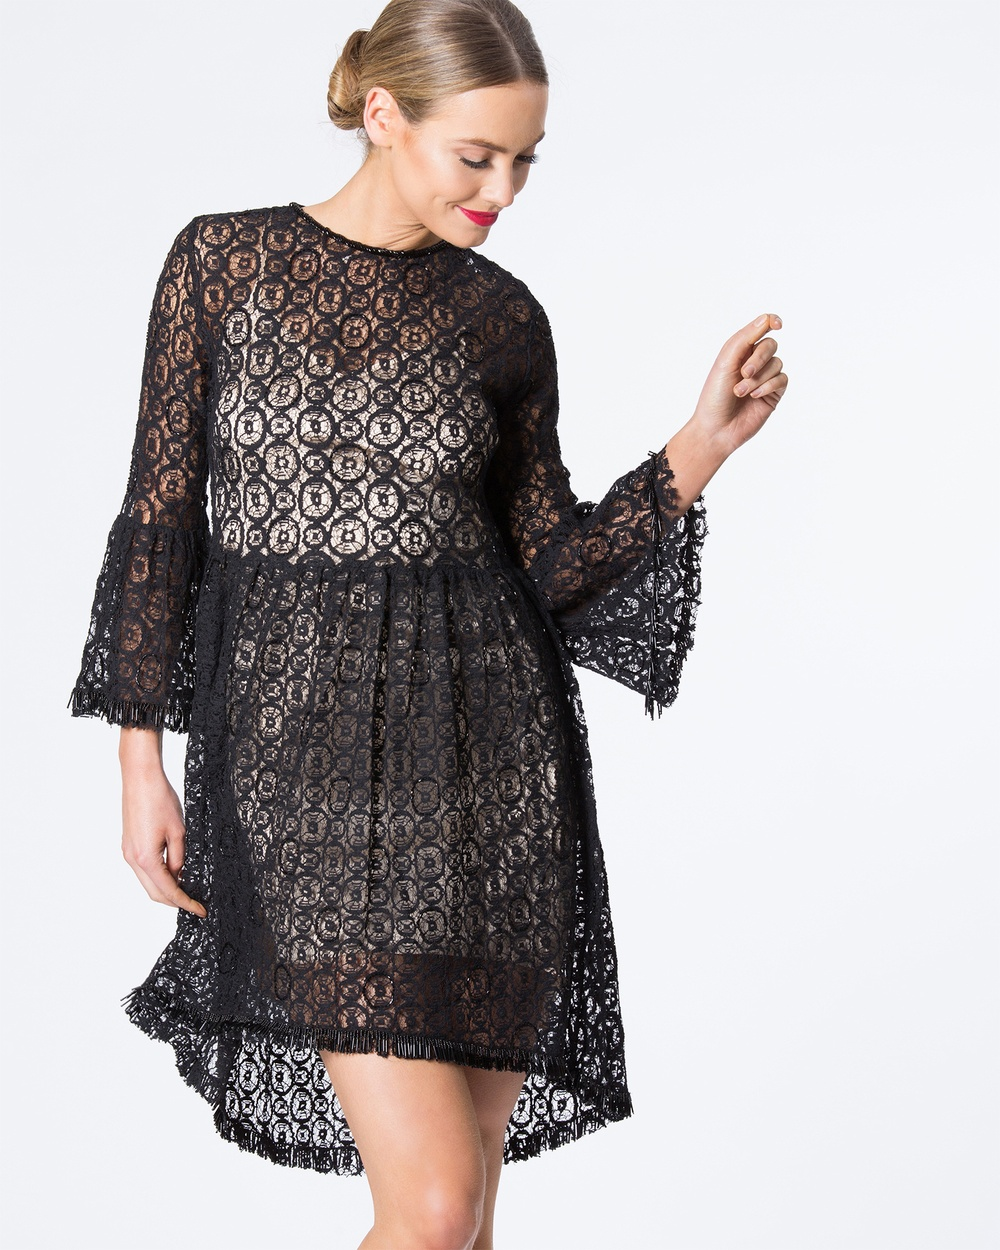 SIYONA Beaded Lace Dress Dresses Black Beaded Lace Dress